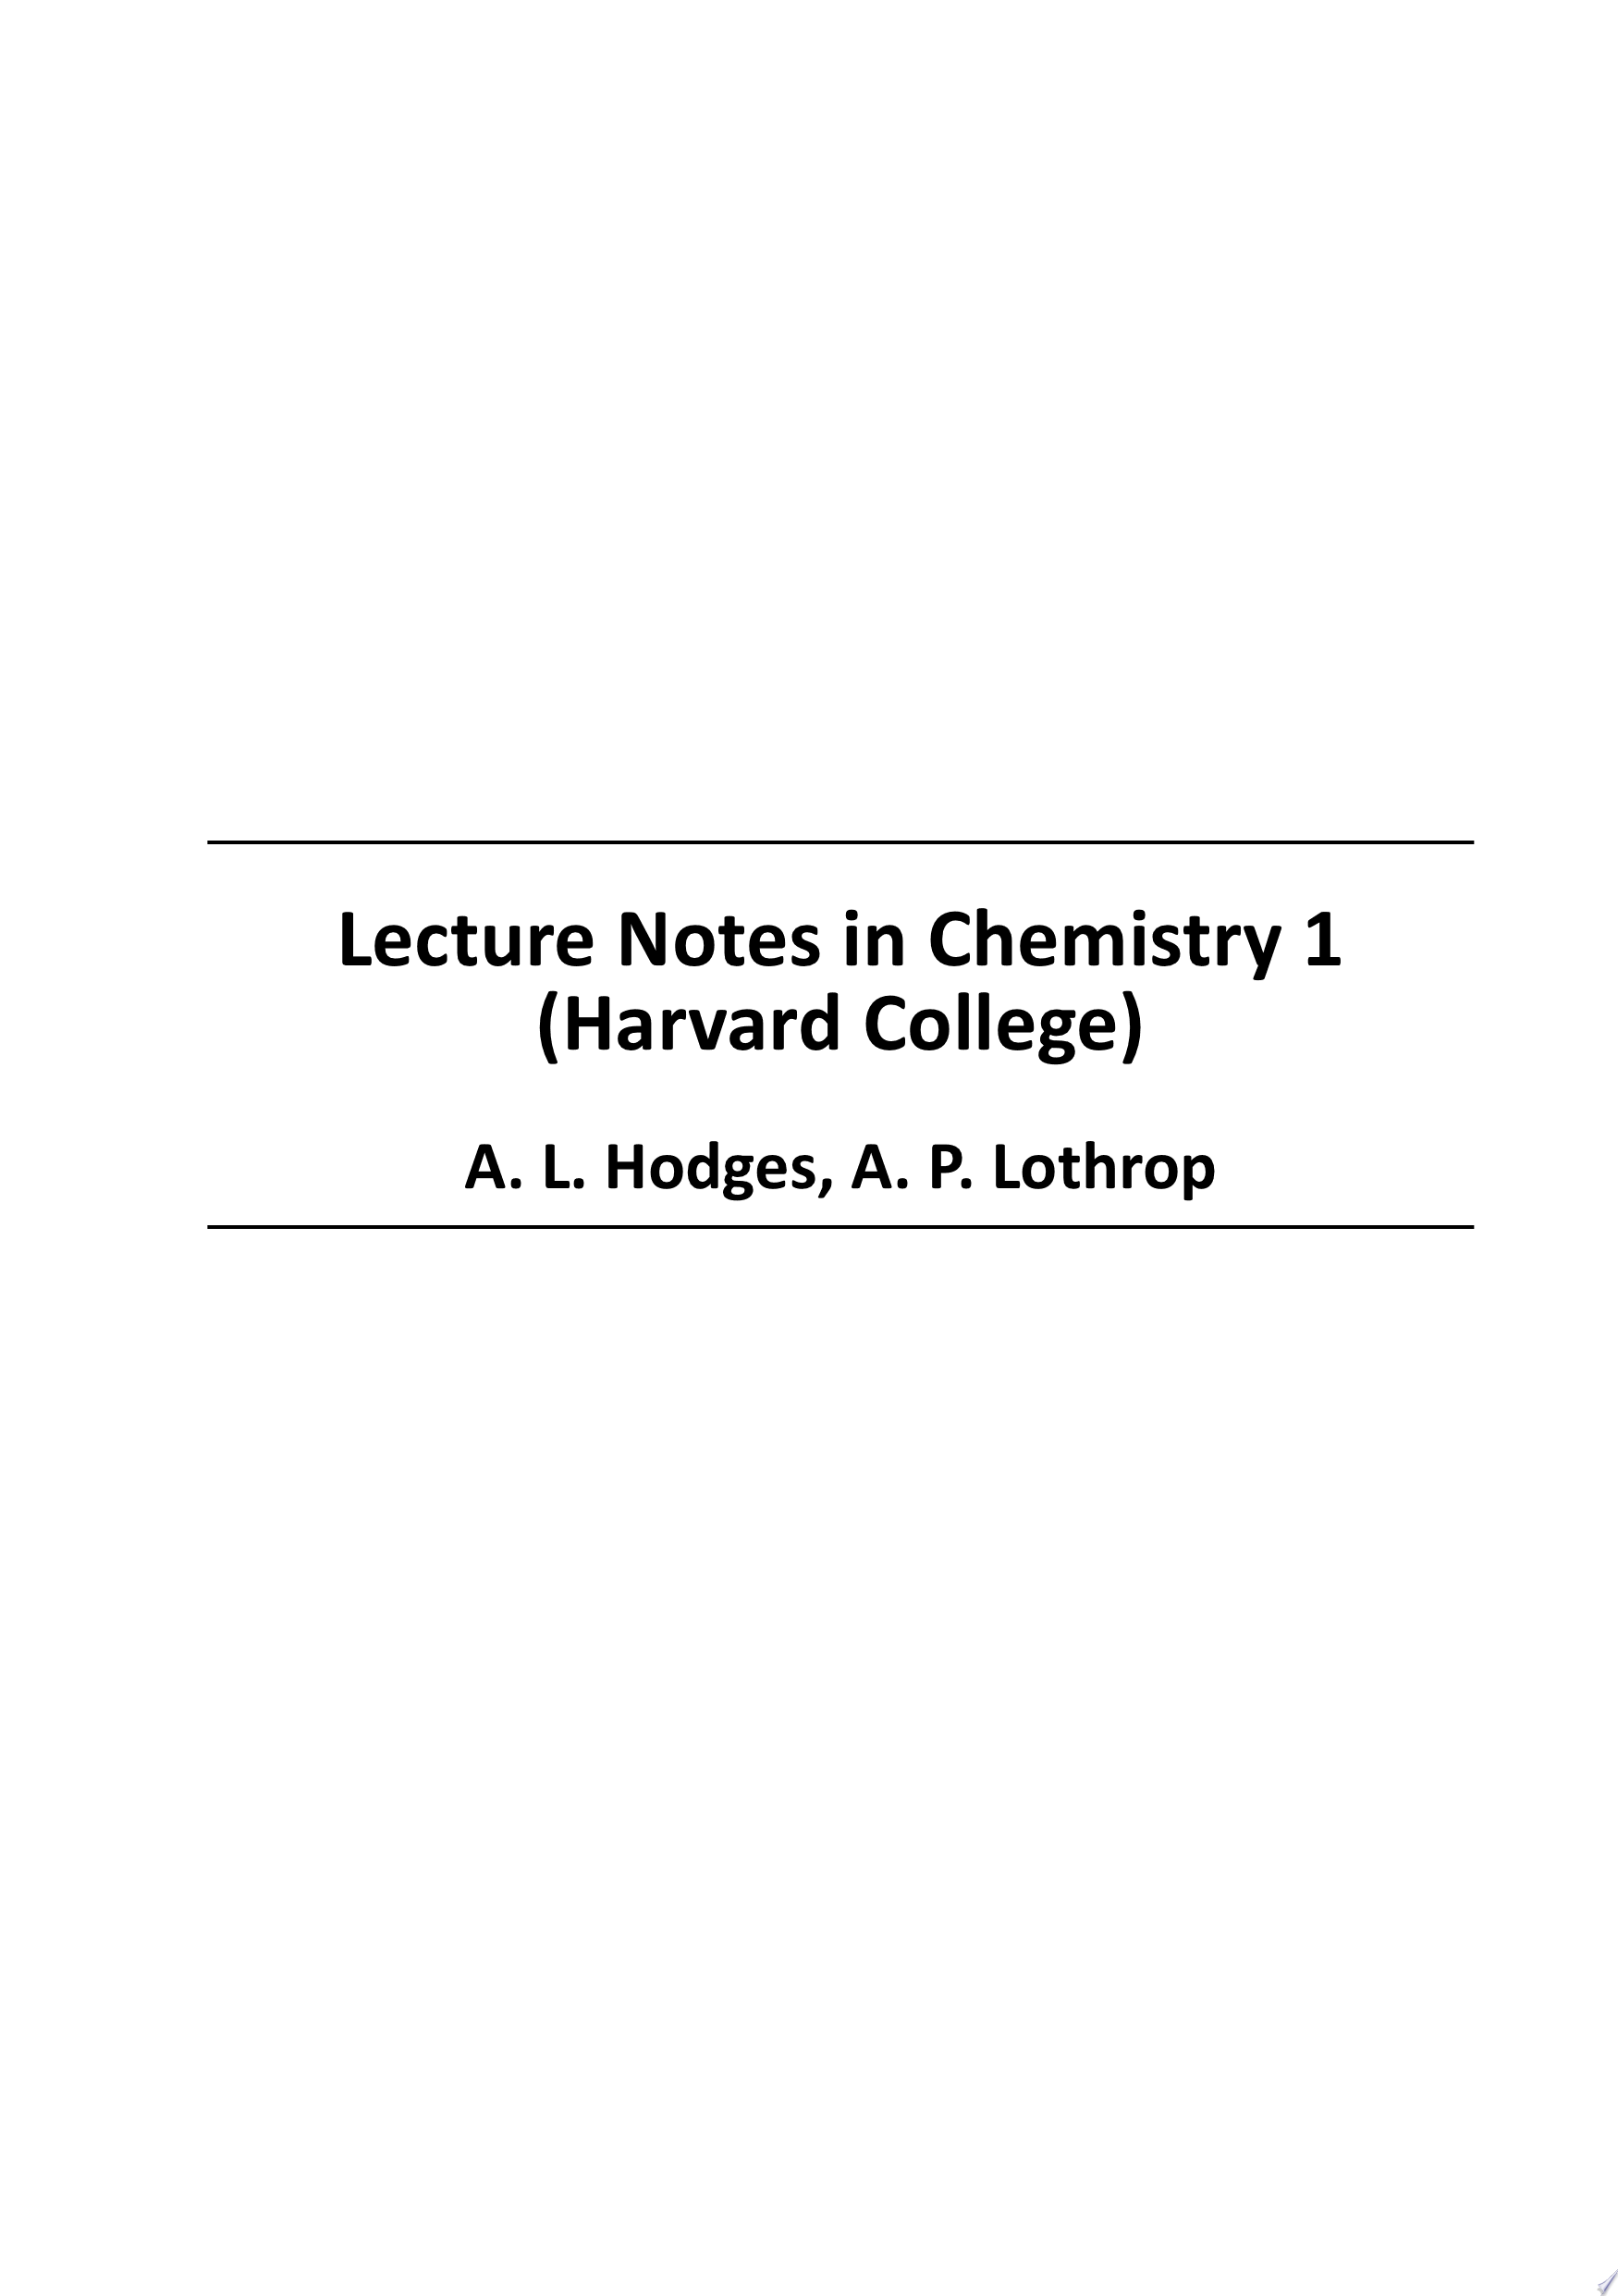 Lecture Notes in Chemistry 1  Harvard College